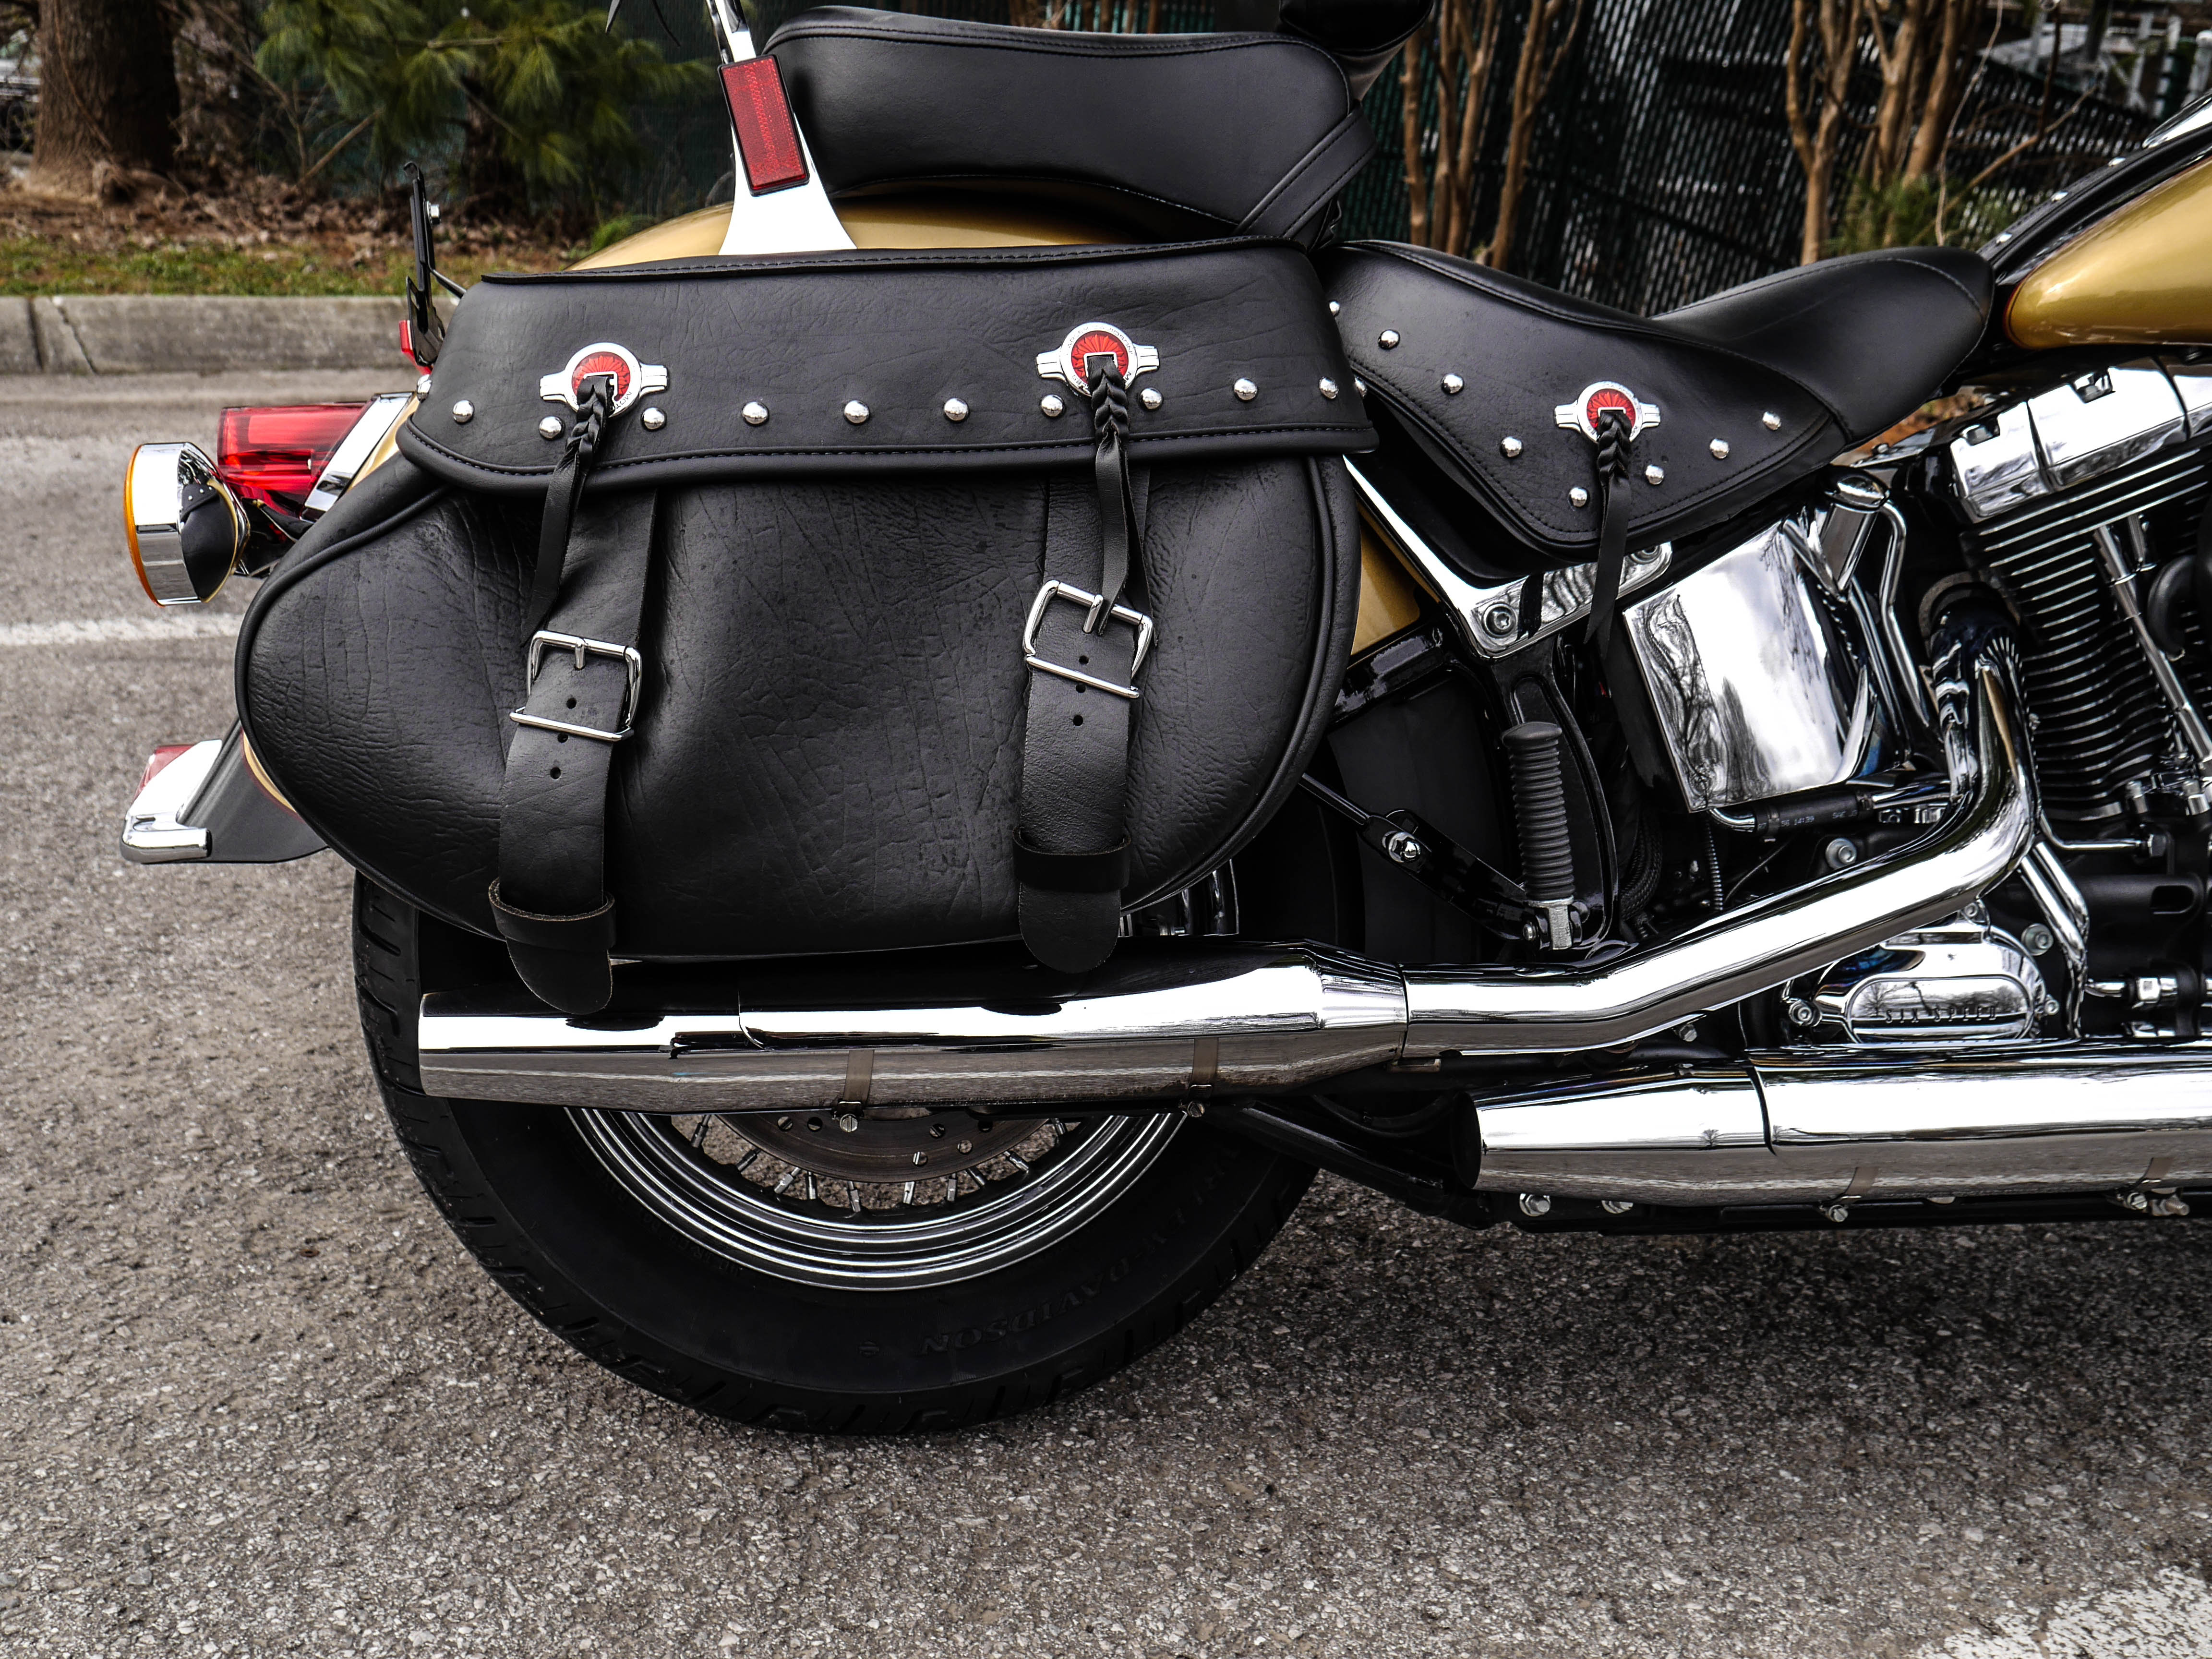 Pre-Owned 2017 Harley-Davidson Heritage Softail Classic in